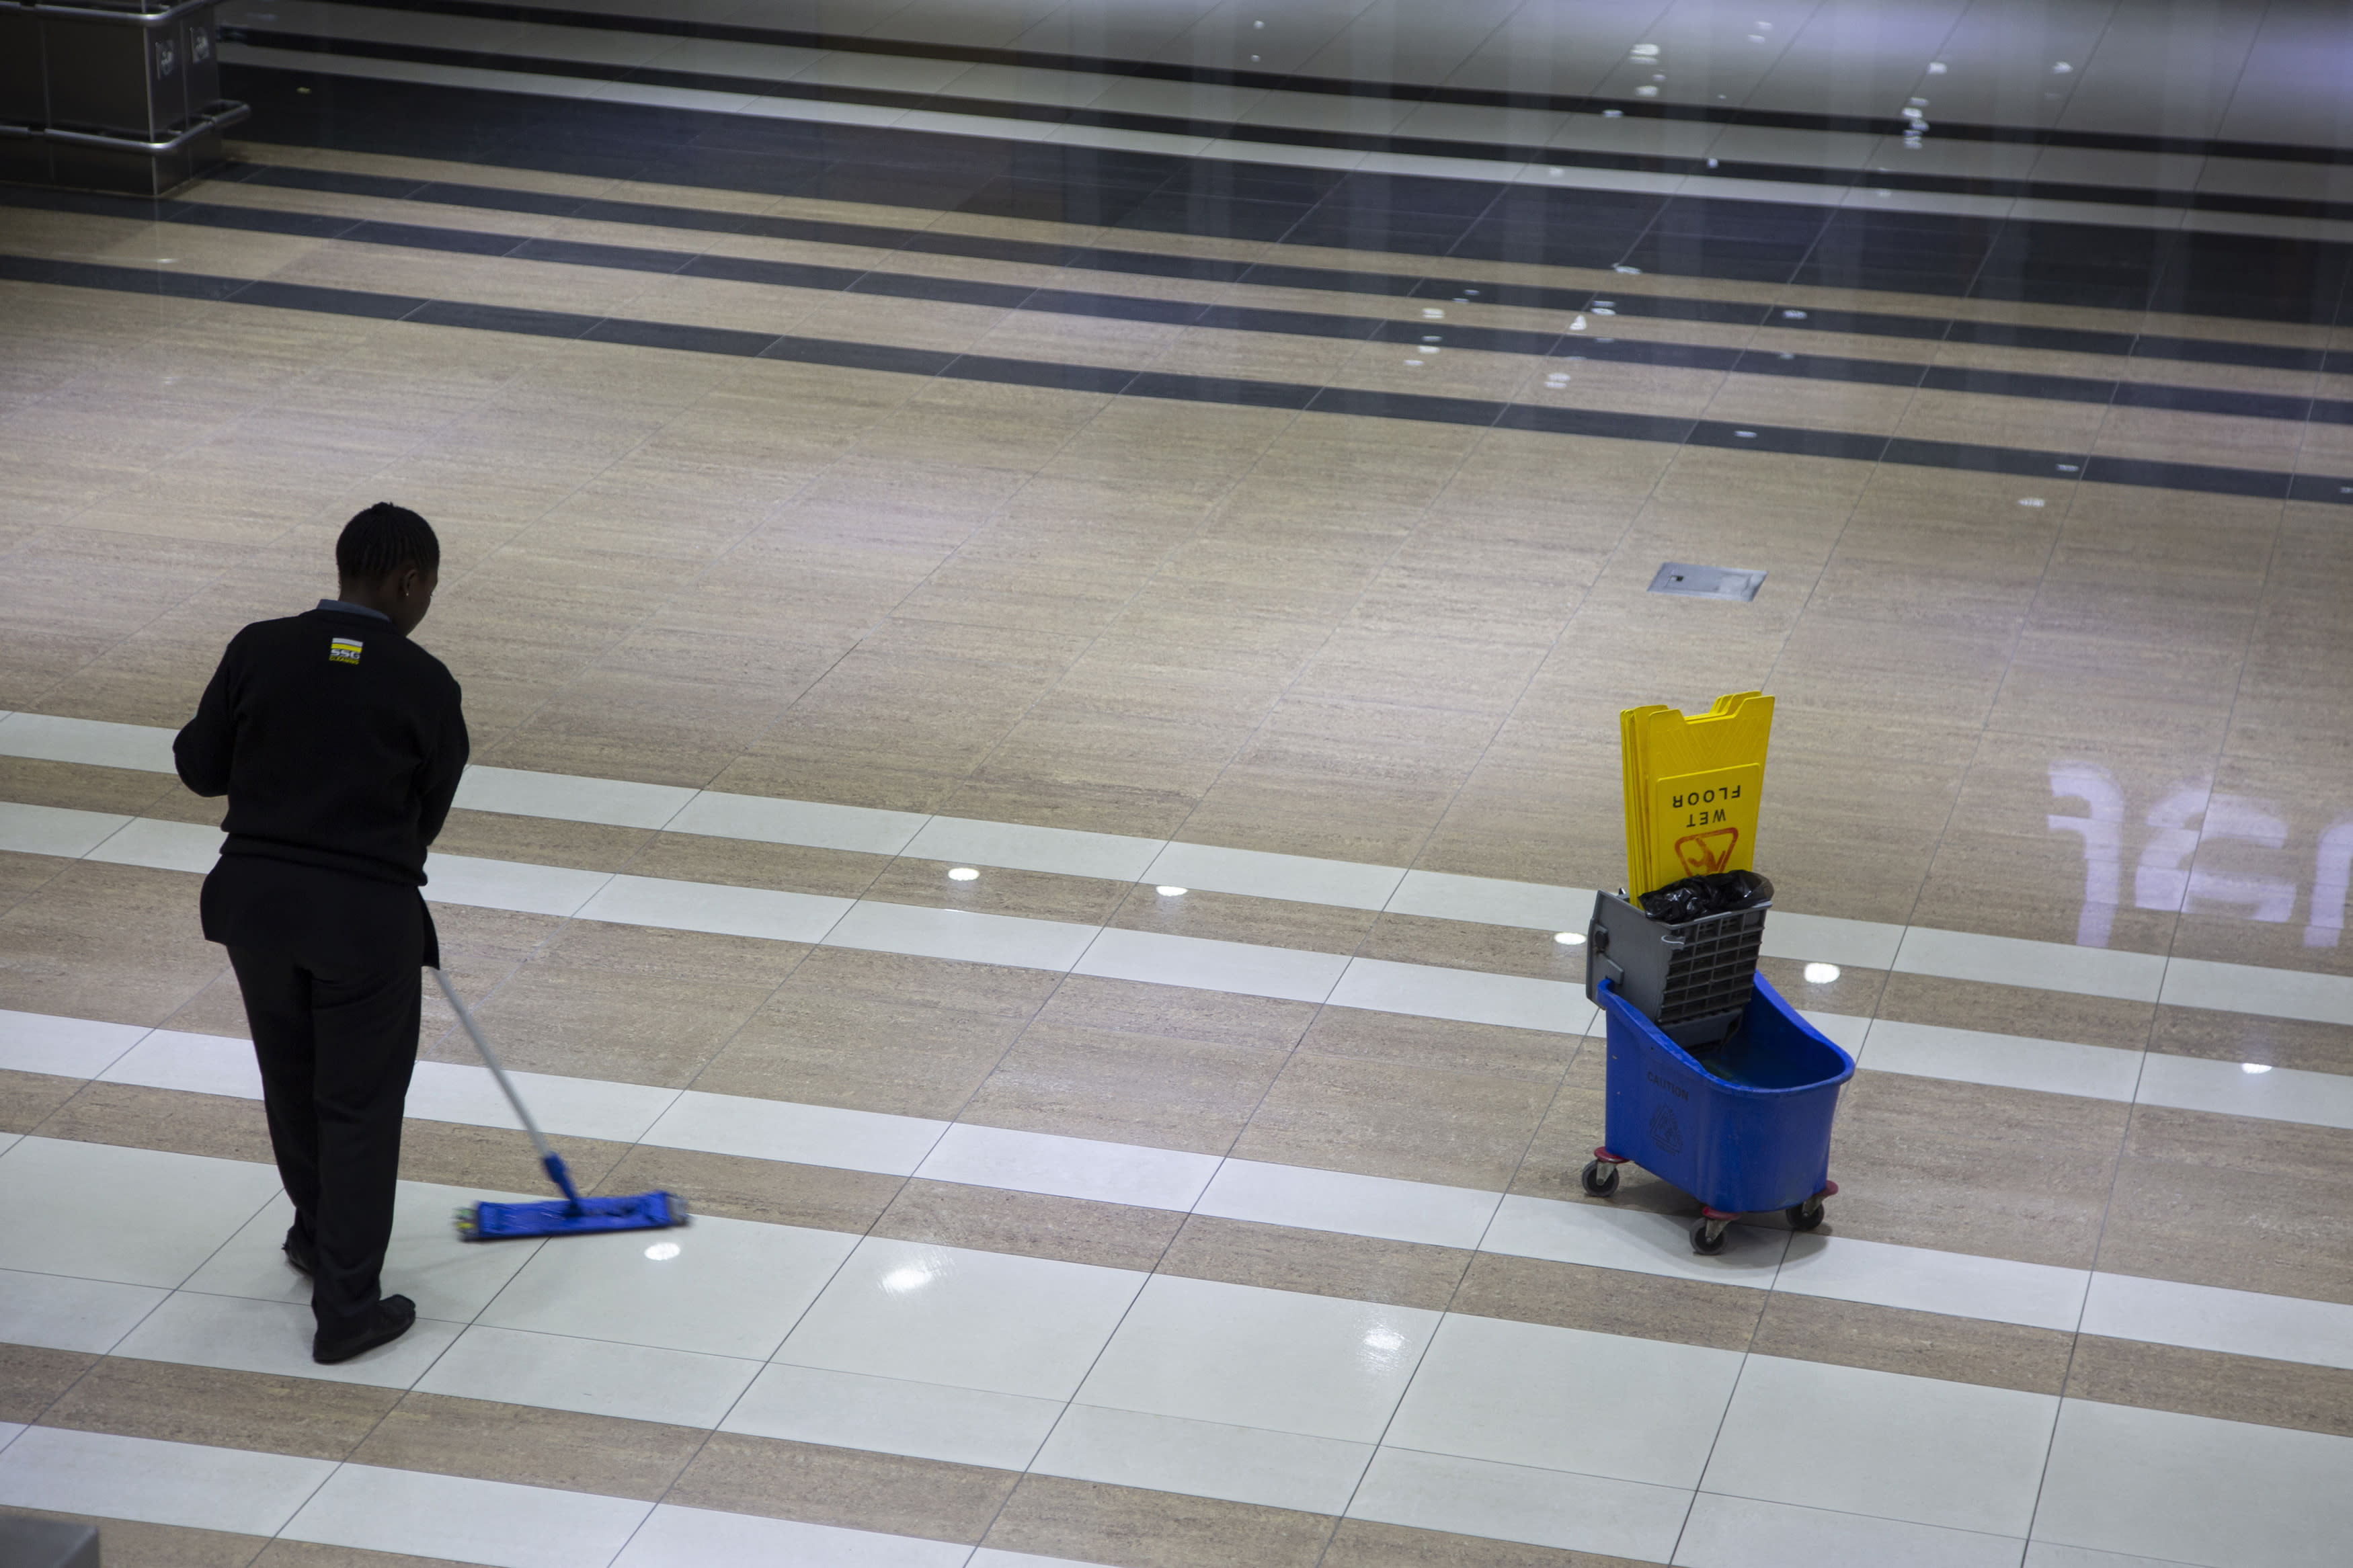 A cleaner mops a floor in a Johannesburg supermarket Wednesday, March 18, 2020 as a measure against the new coronavirus. For most people, the new coronavirus causes only mild or moderate symptoms. For some it can cause more severe illness. (AP Photo/Denis Farrell)